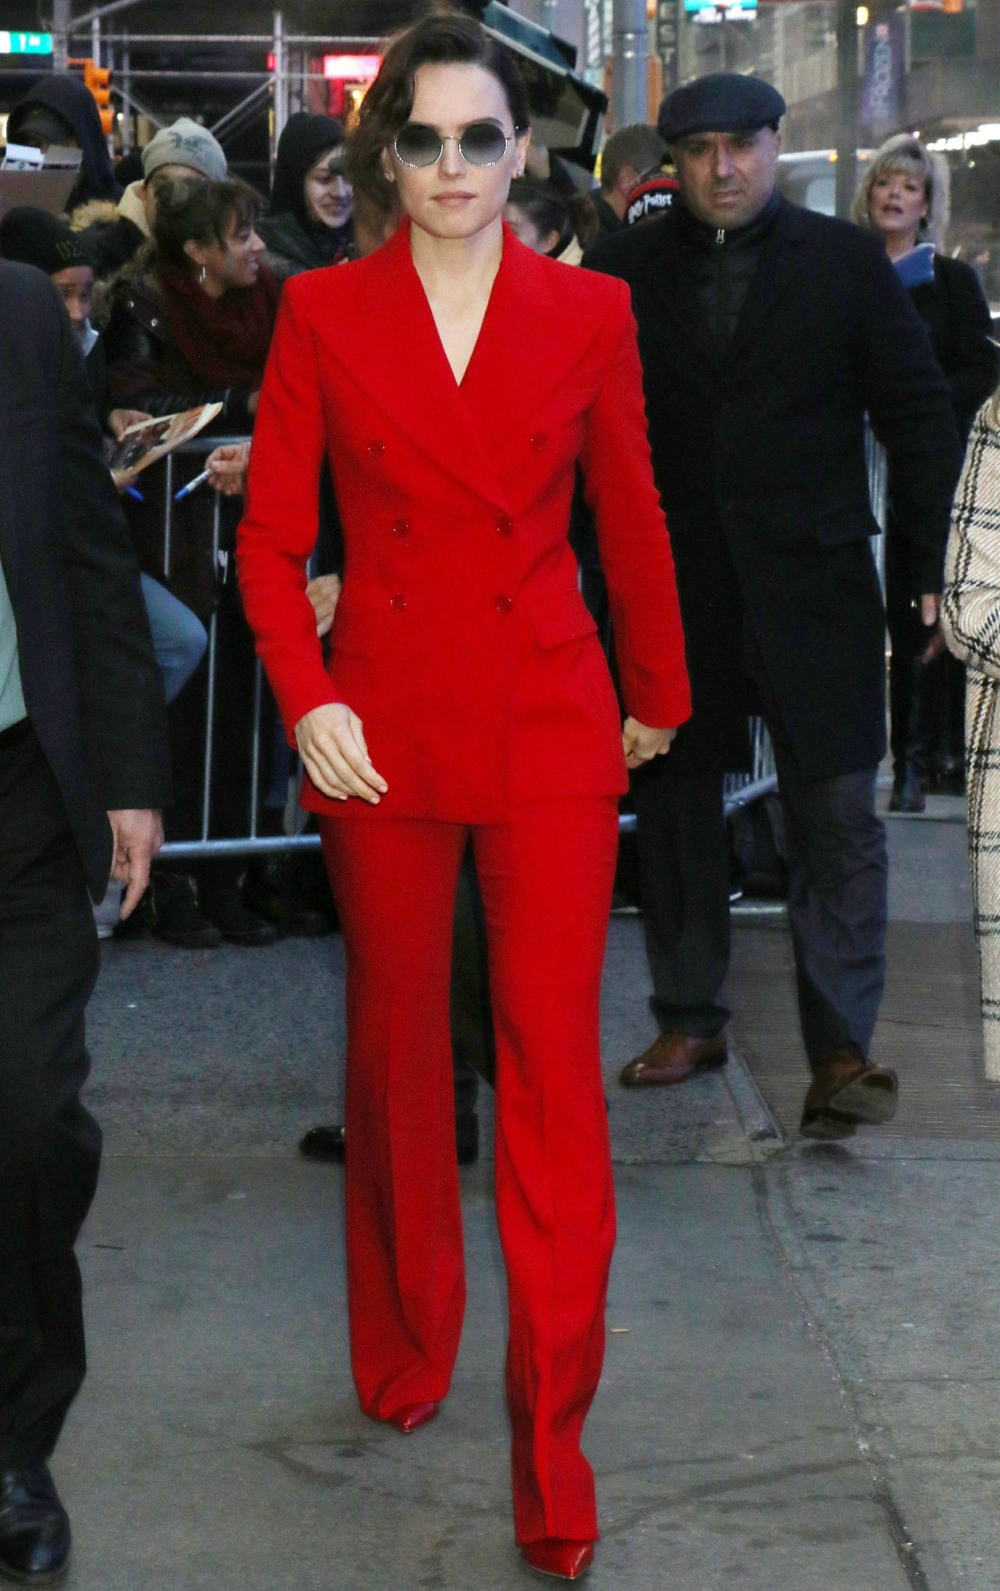 Daisy Ridley arrives at Good Morning America as she greets fans